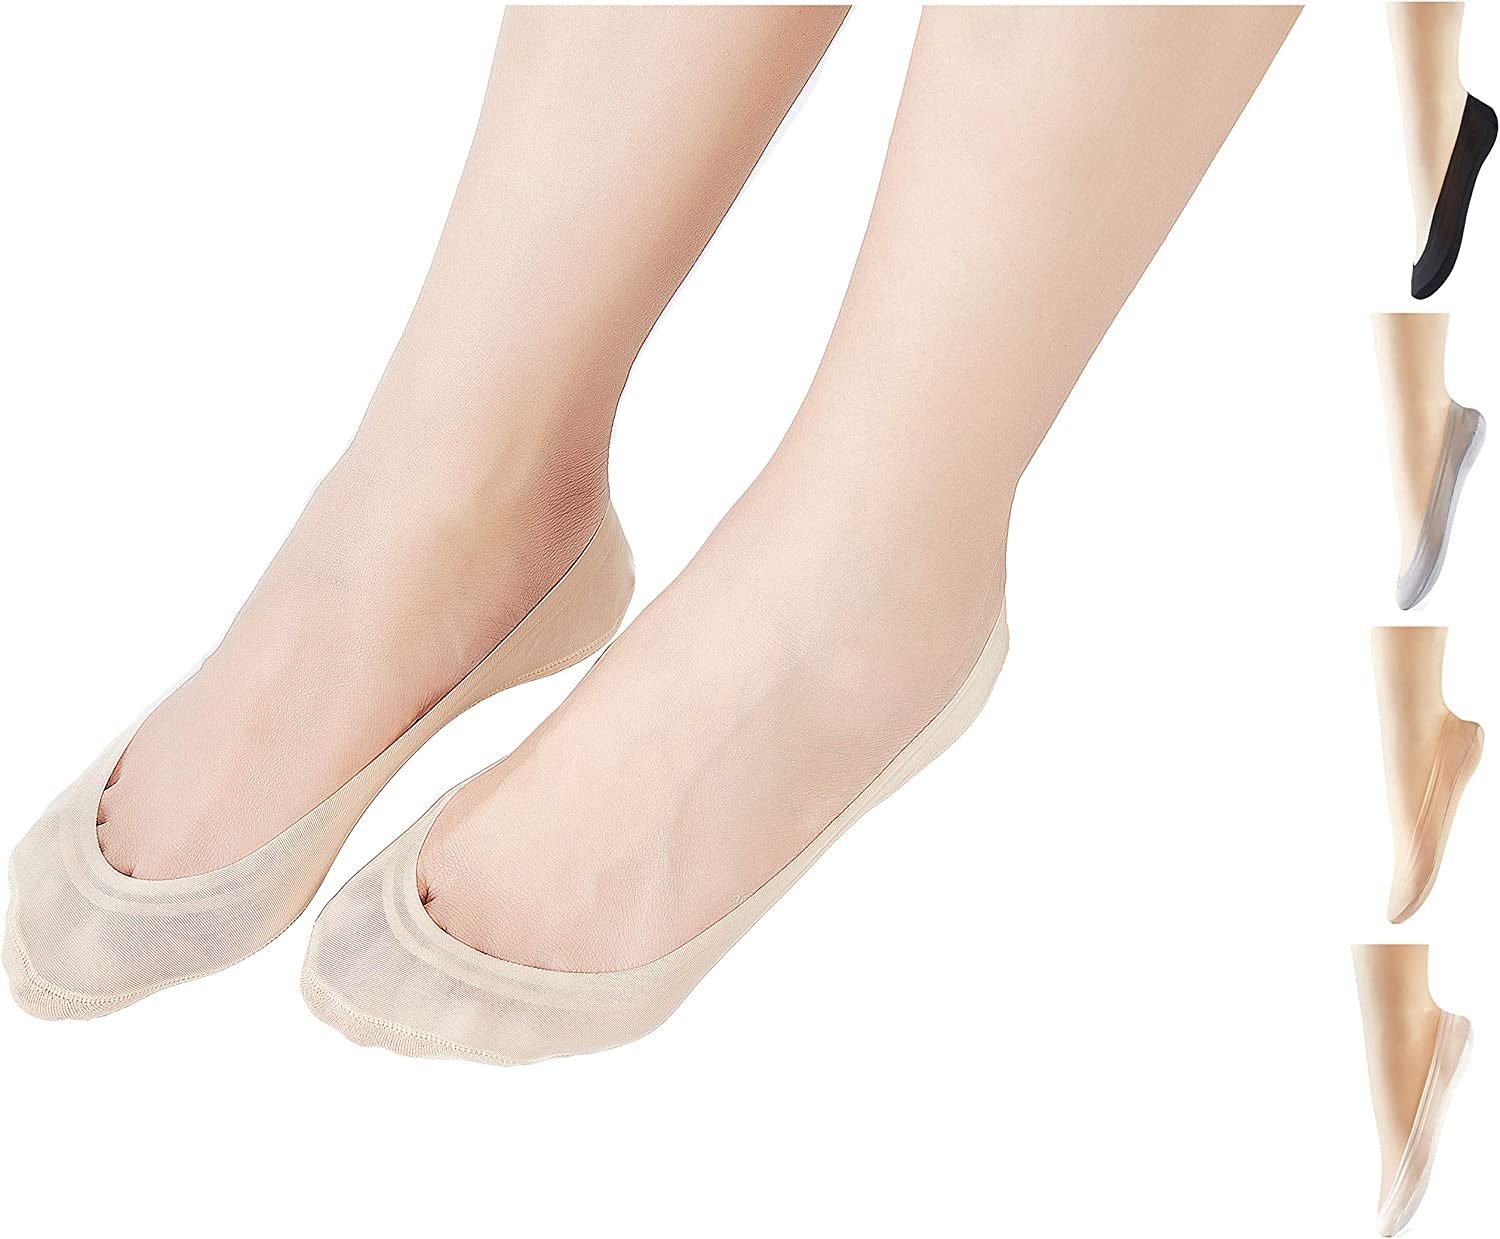 6 Pairs Ladies Girls Cotton Rich Invisible Socks Liners Black or White All Sizes